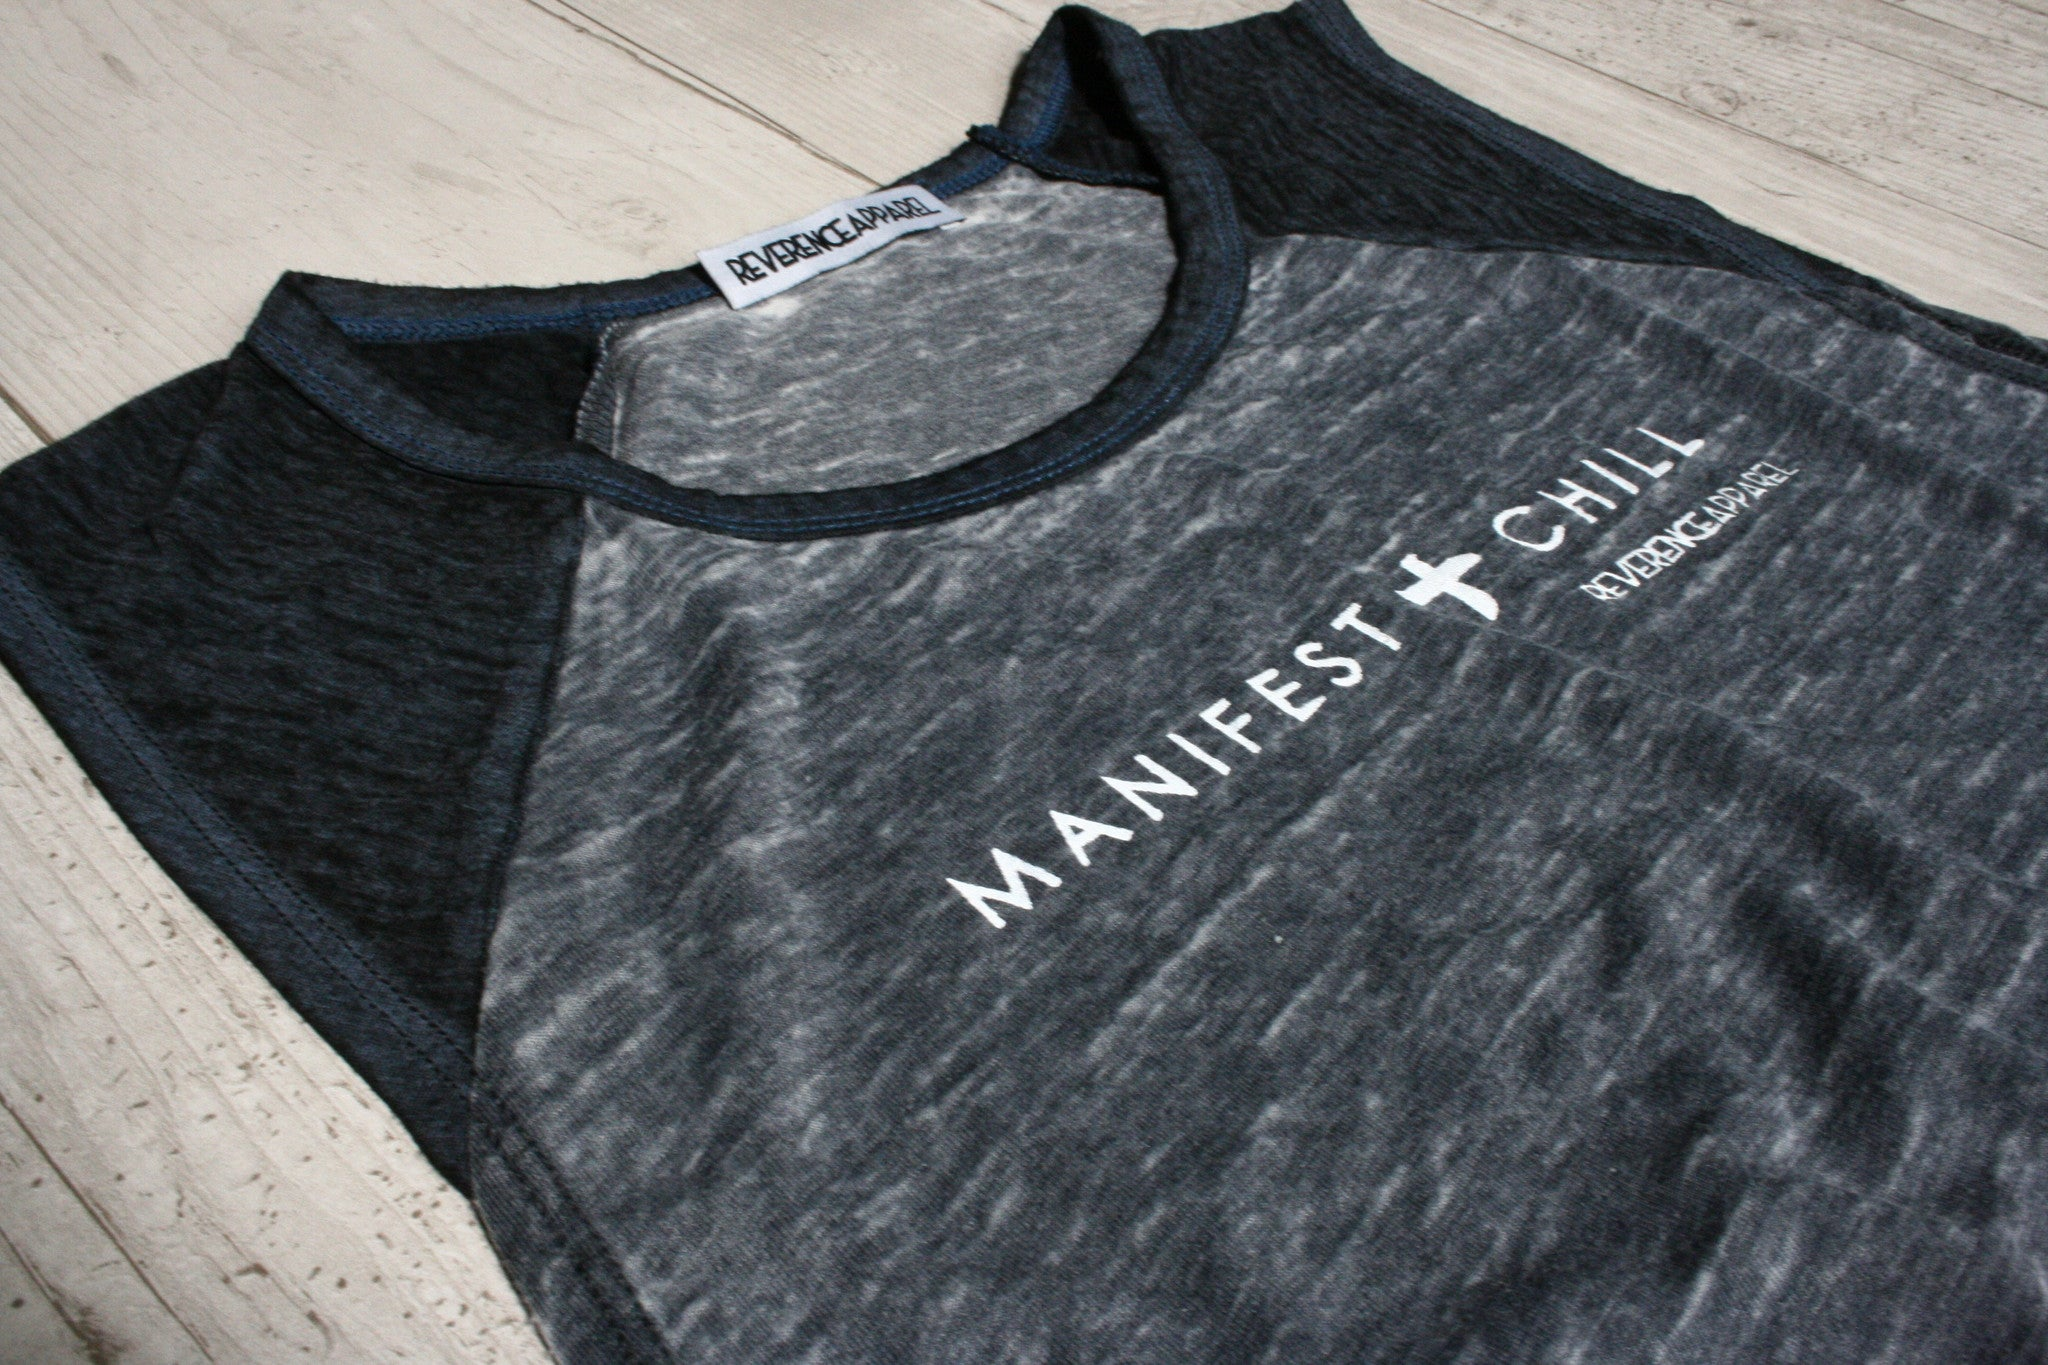 MANIFEST AND CHILL RAGLAN MUSCLE TEE REVERENCE APPAREL